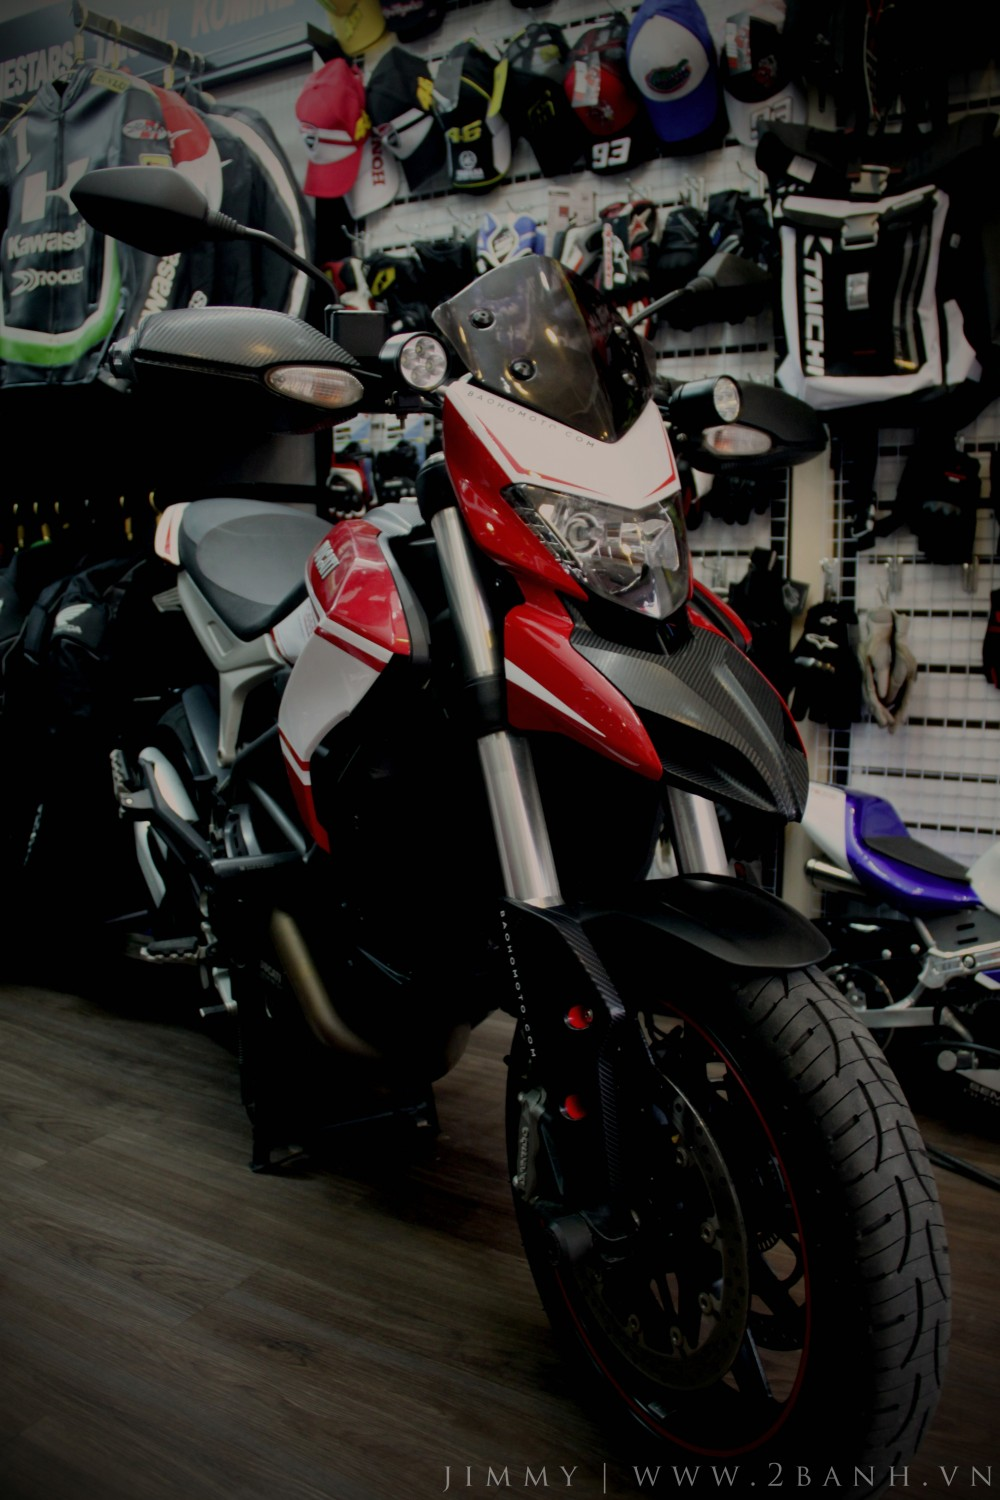 Ducati Hyperstrada lung linh khoe sac